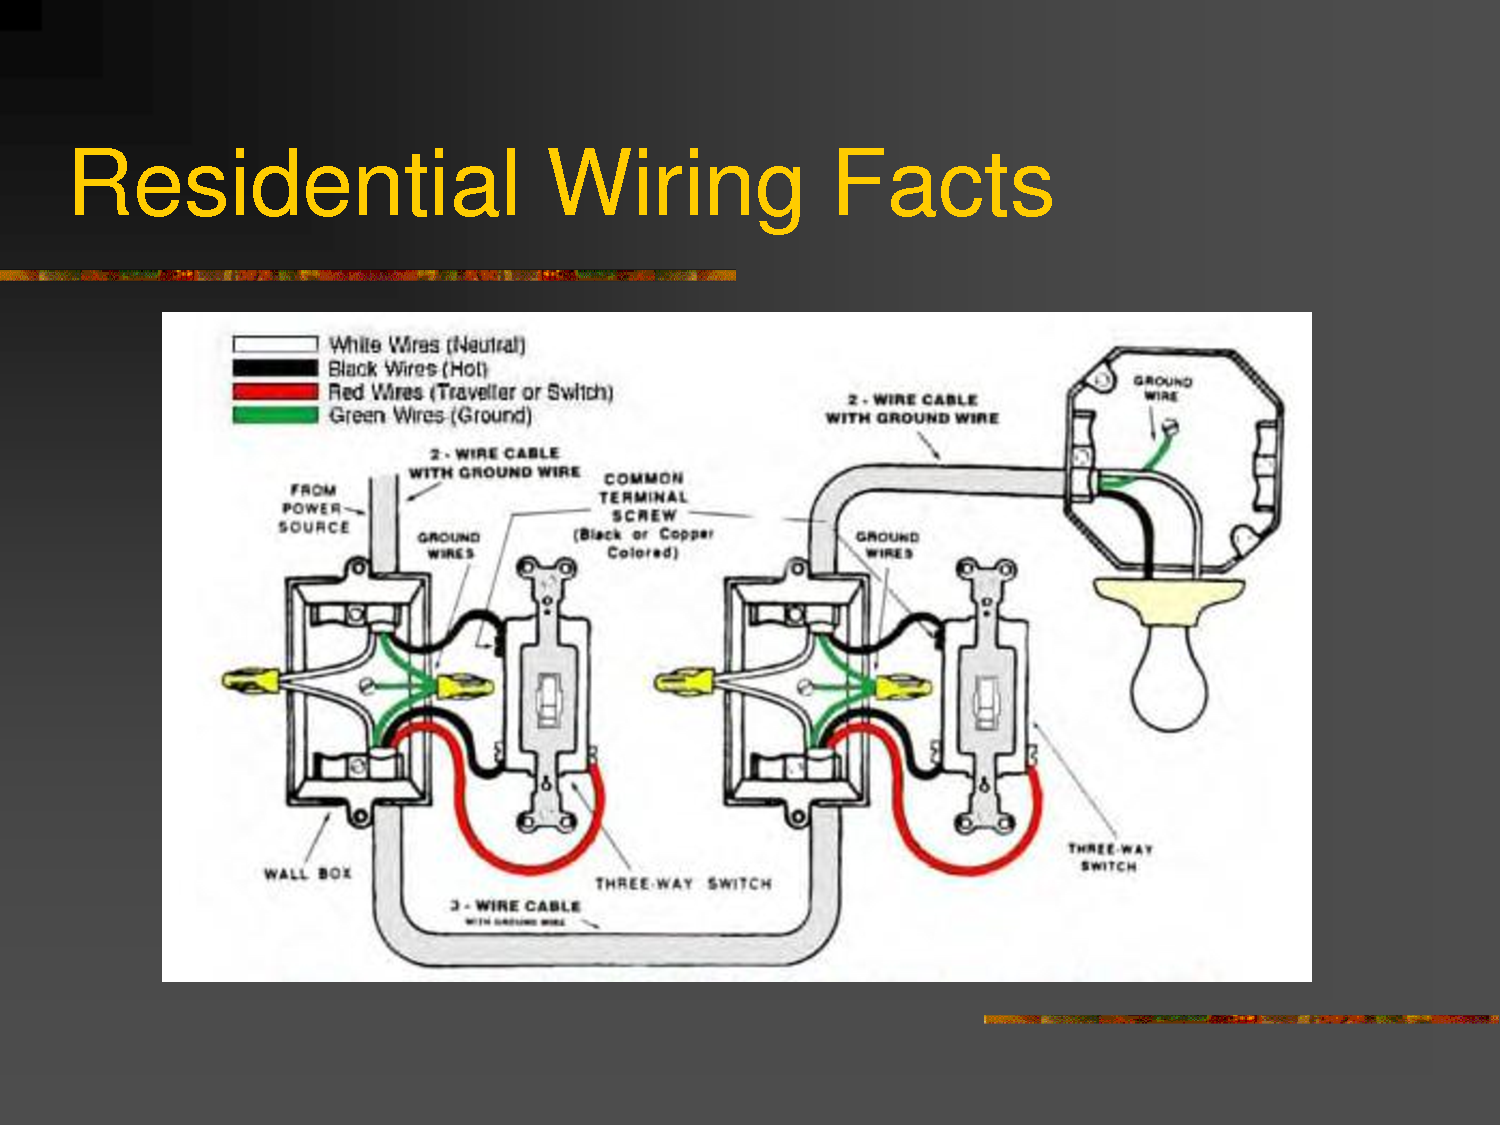 4 best images of residential wiring diagrams house electrical rh pinterest com residential wiring diagrams and schematics pdf residential wiring diagrams and schematics pdf